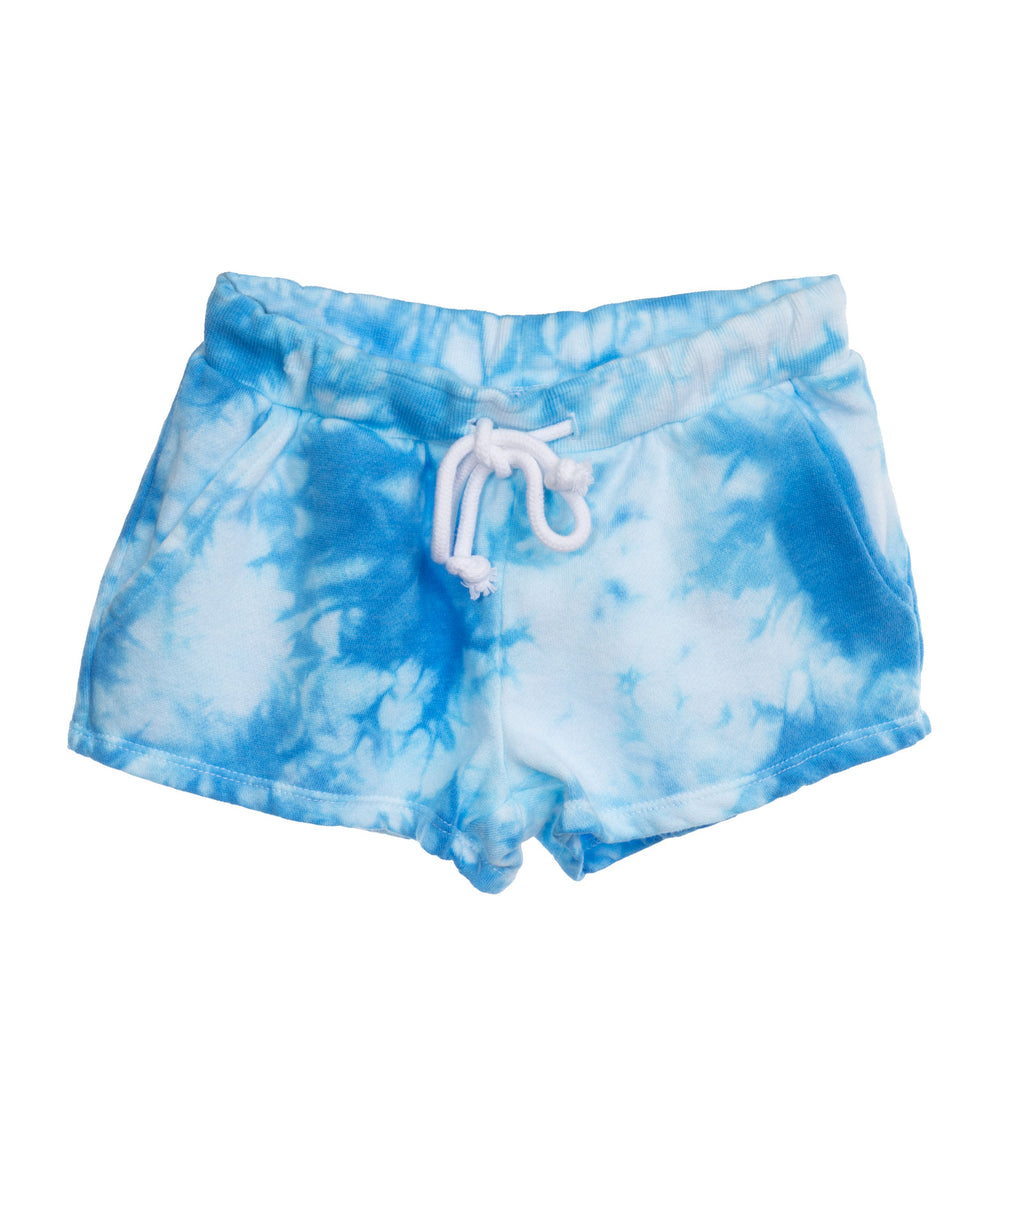 Katie J NYC Girls Frenchie Blue and White Tie Dye Shorts